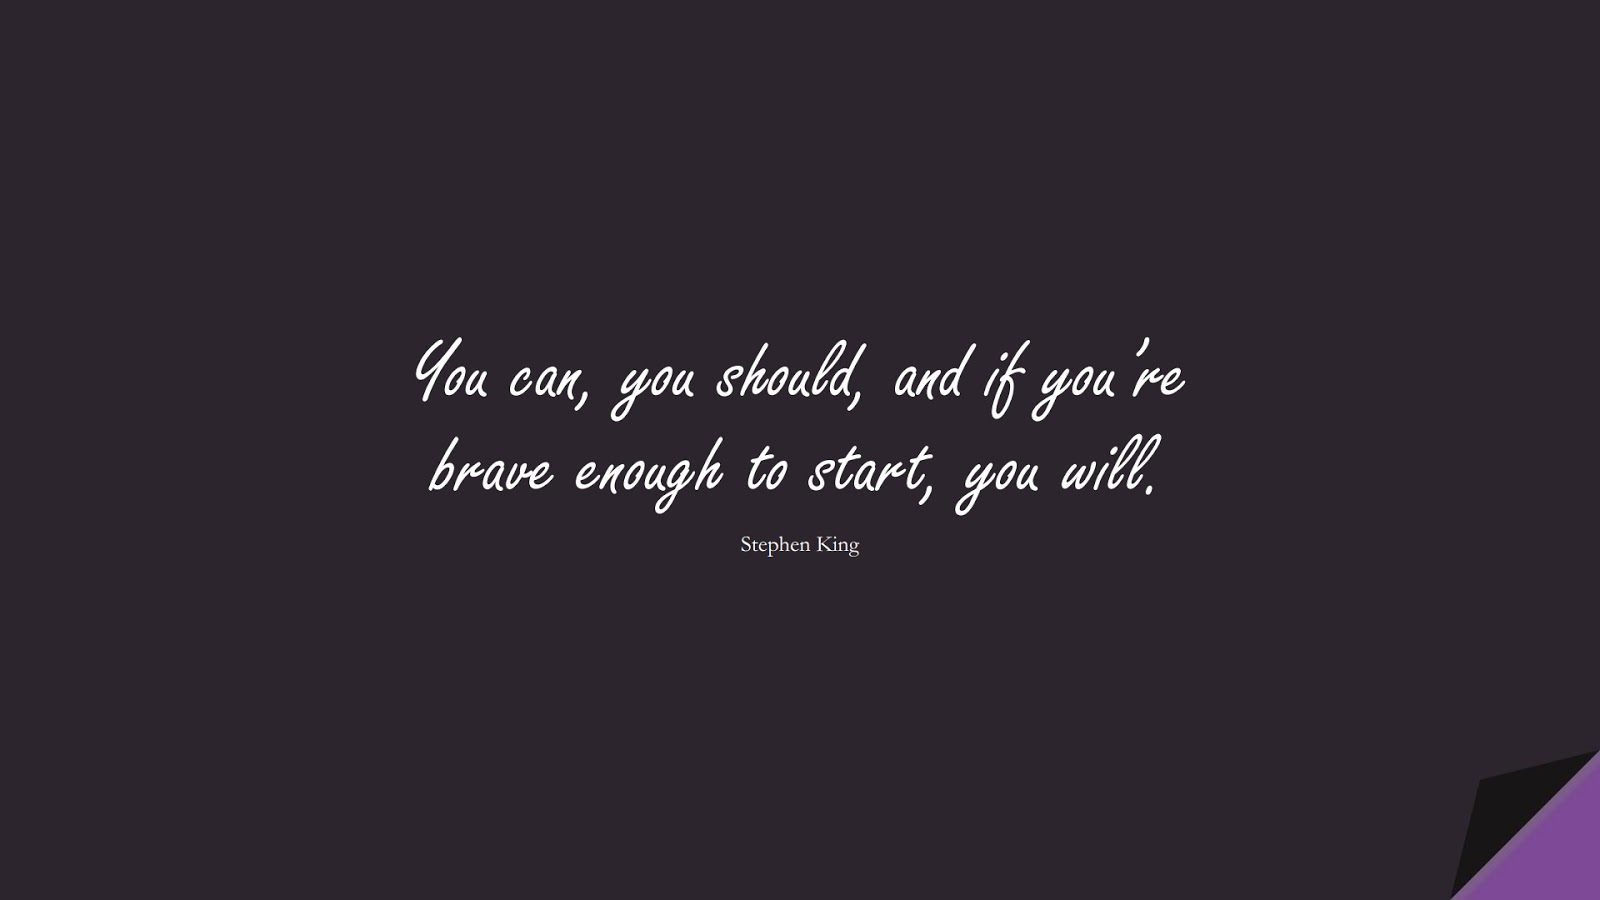 You can, you should, and if you're brave enough to start, you will. (Stephen King);  #PositiveQuotes